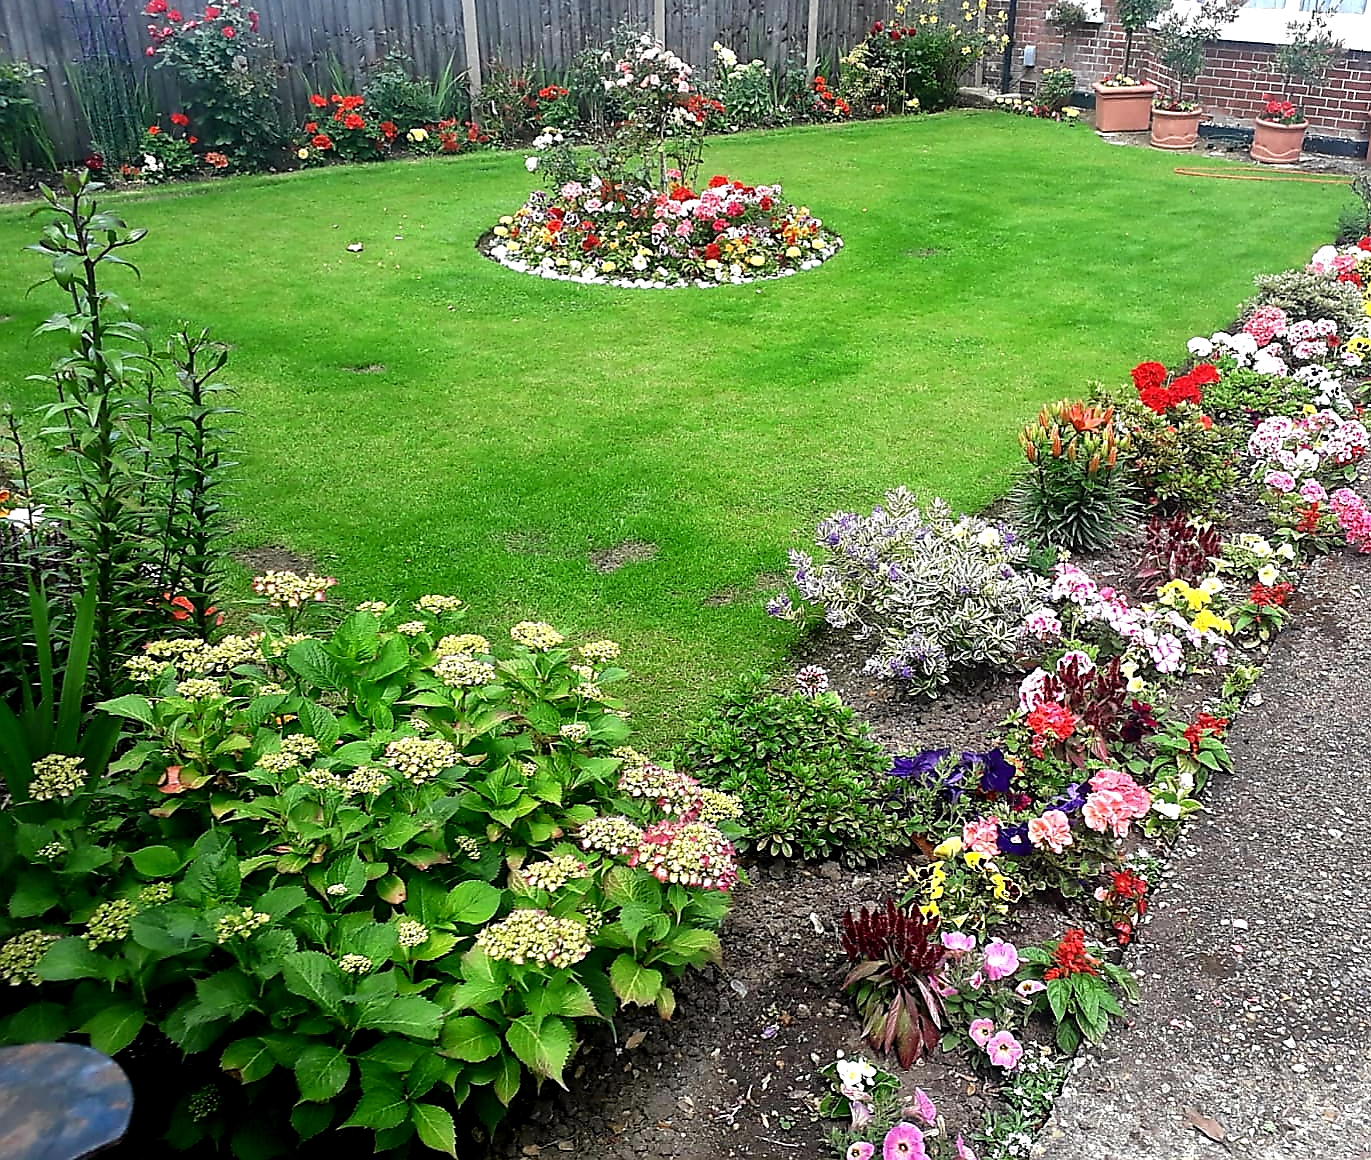 image of the garden